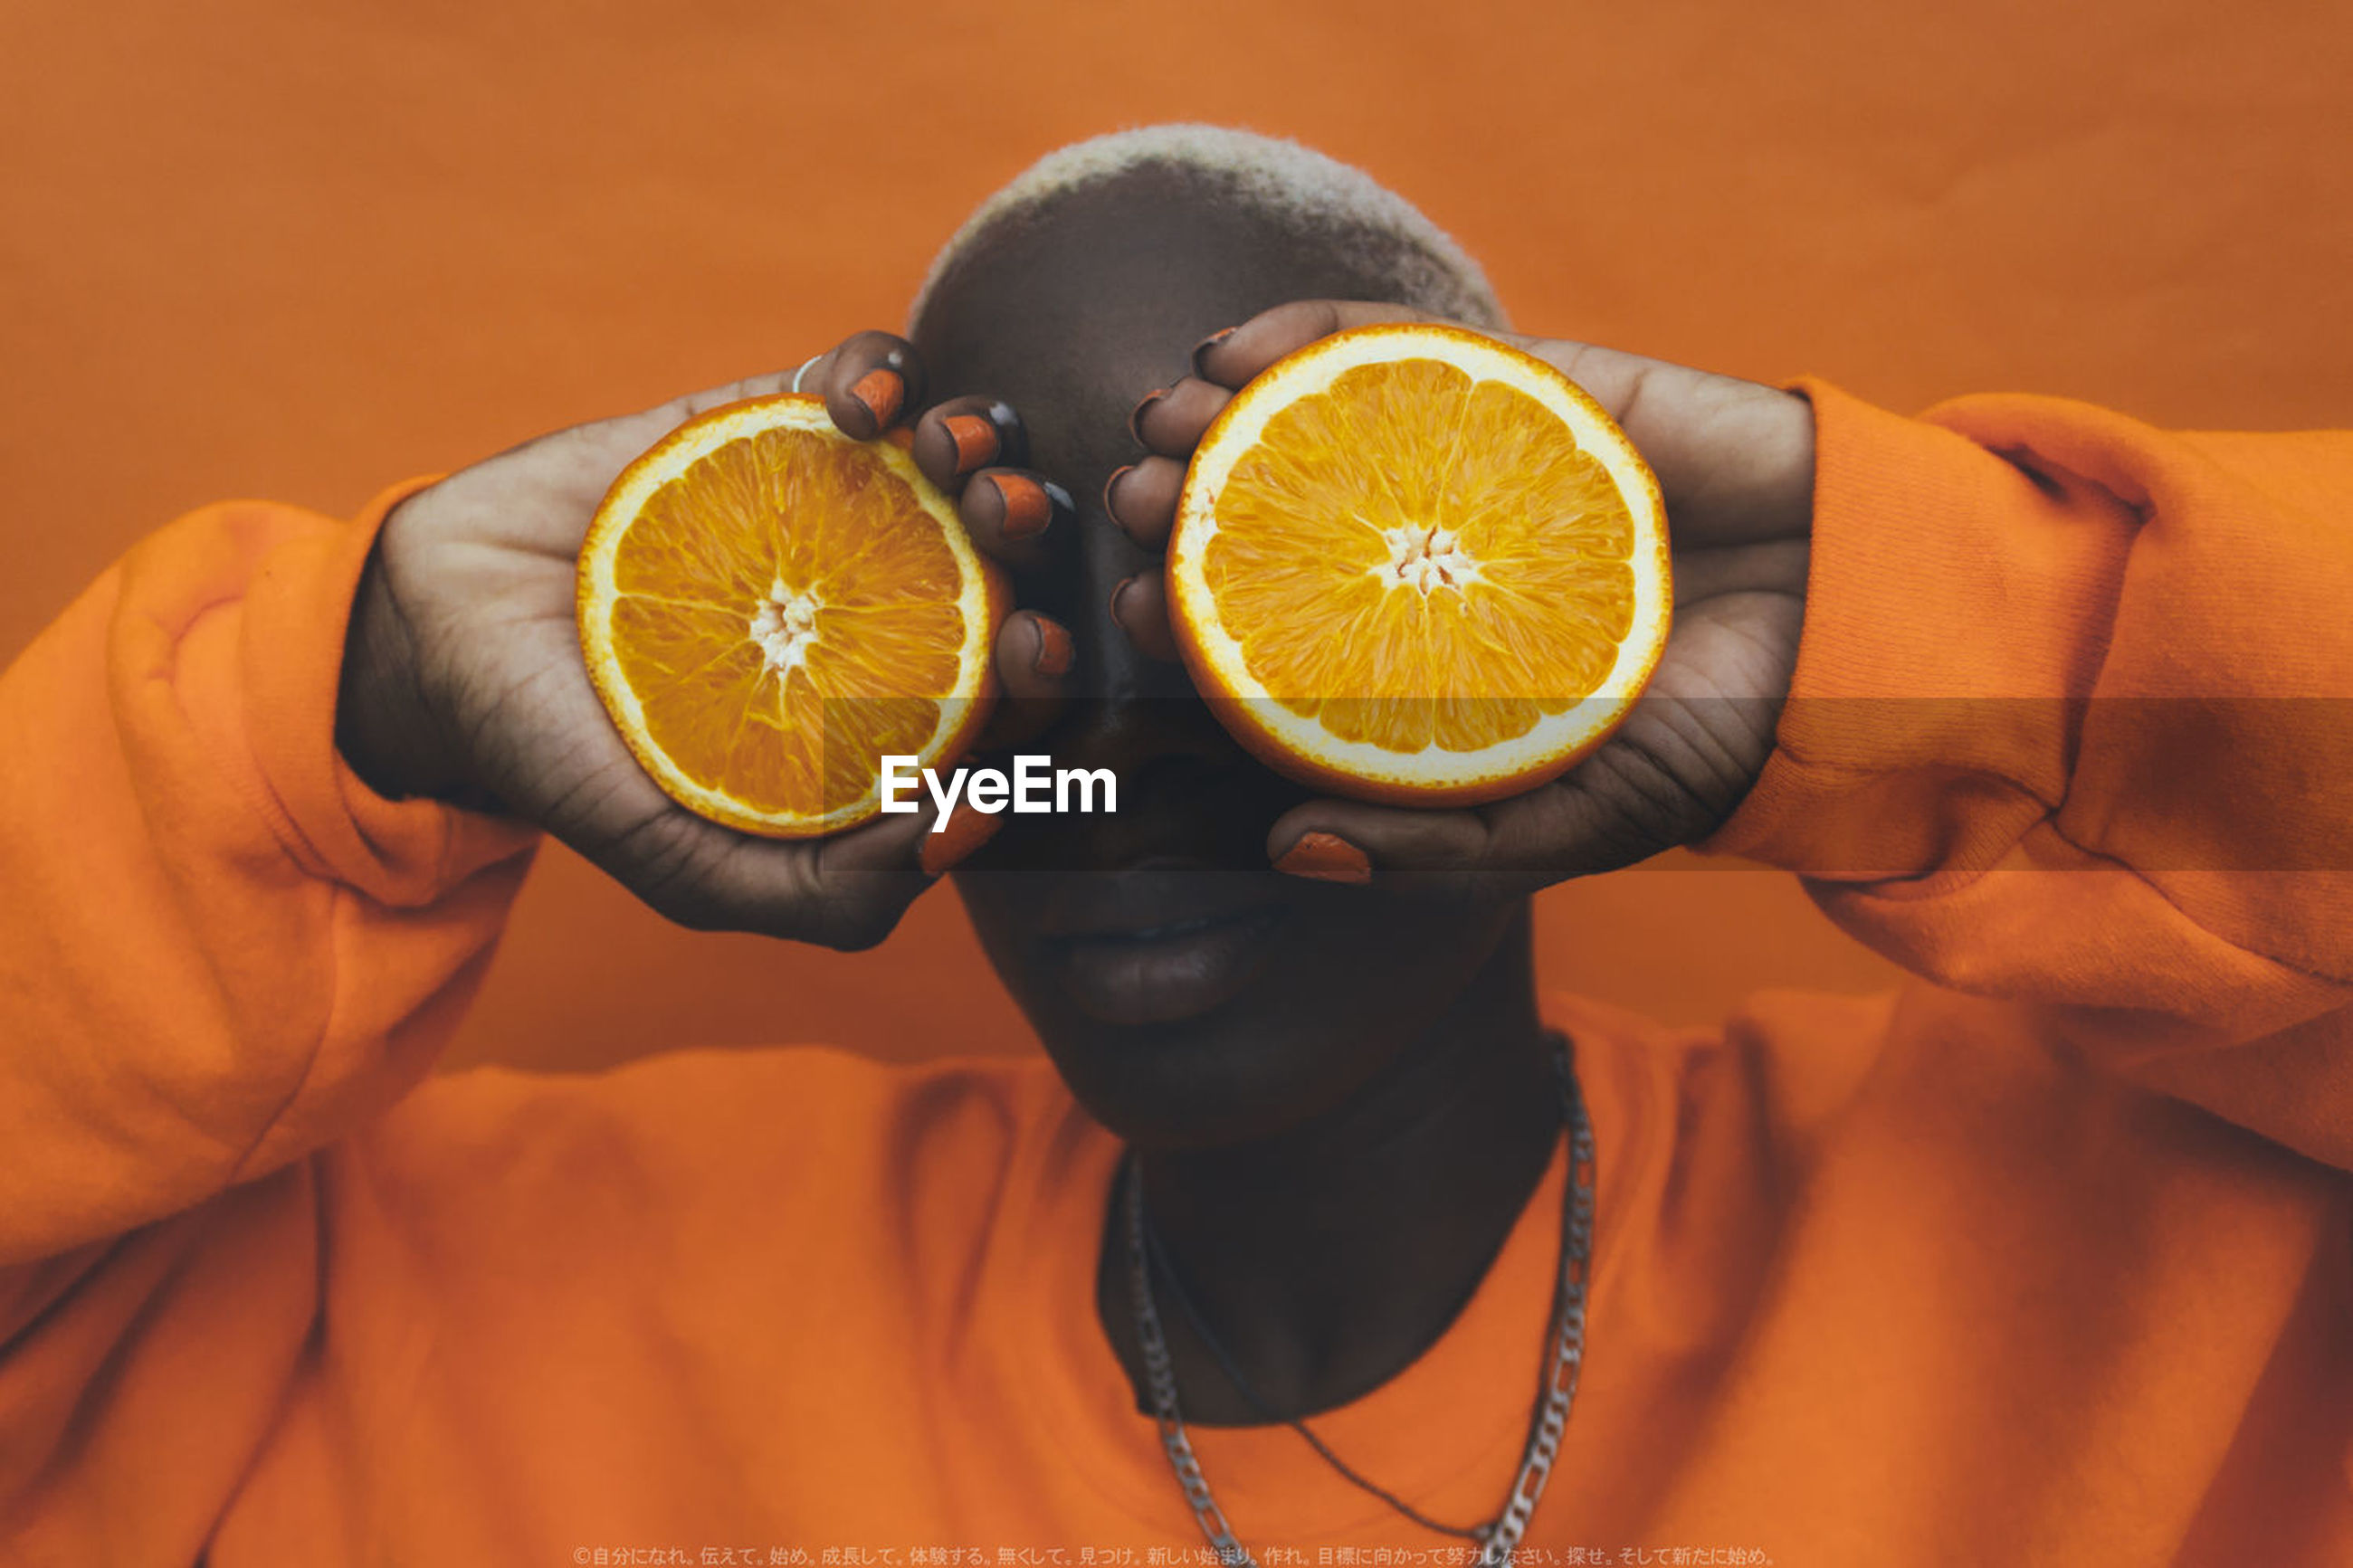 fruit, citrus fruit, orange - fruit, healthy eating, holding, food and drink, orange color, indoors, freshness, cross section, headshot, slice, real people, one person, food, close-up, studio shot, boys, healthy lifestyle, human hand, young adult, day, blood orange, people